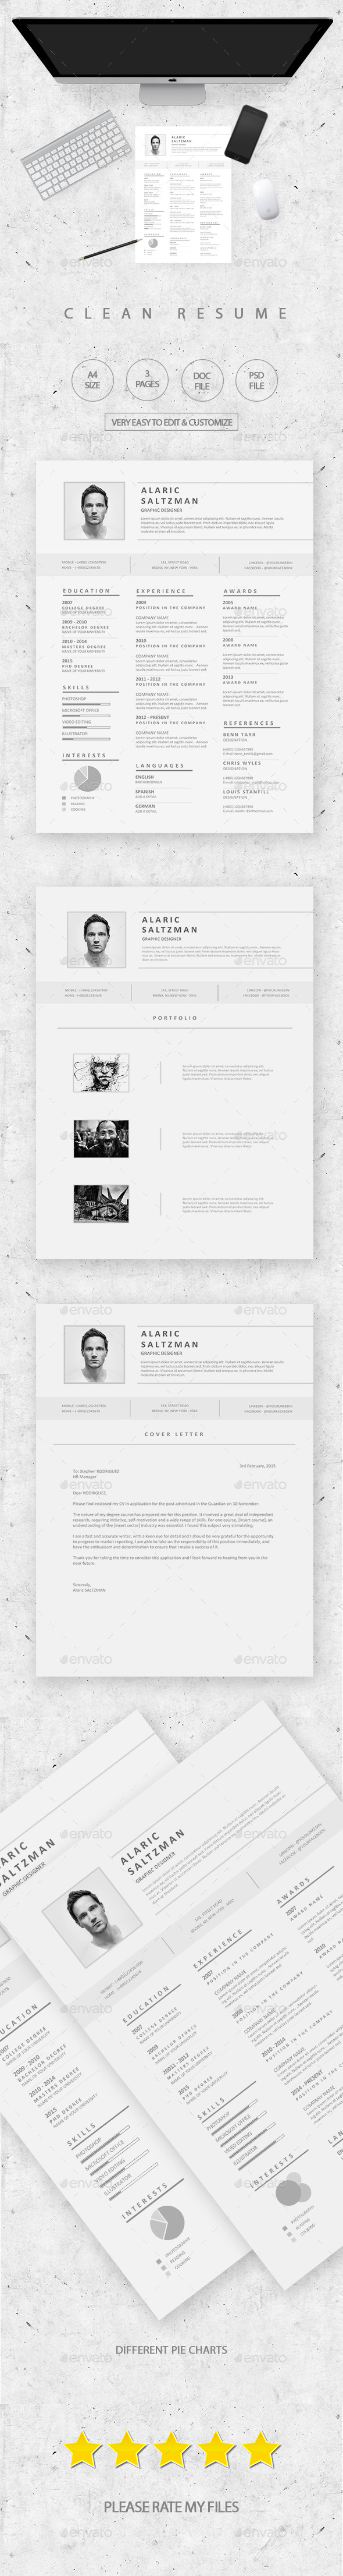 GraphicRiver Clean & Simple Resume 10856589